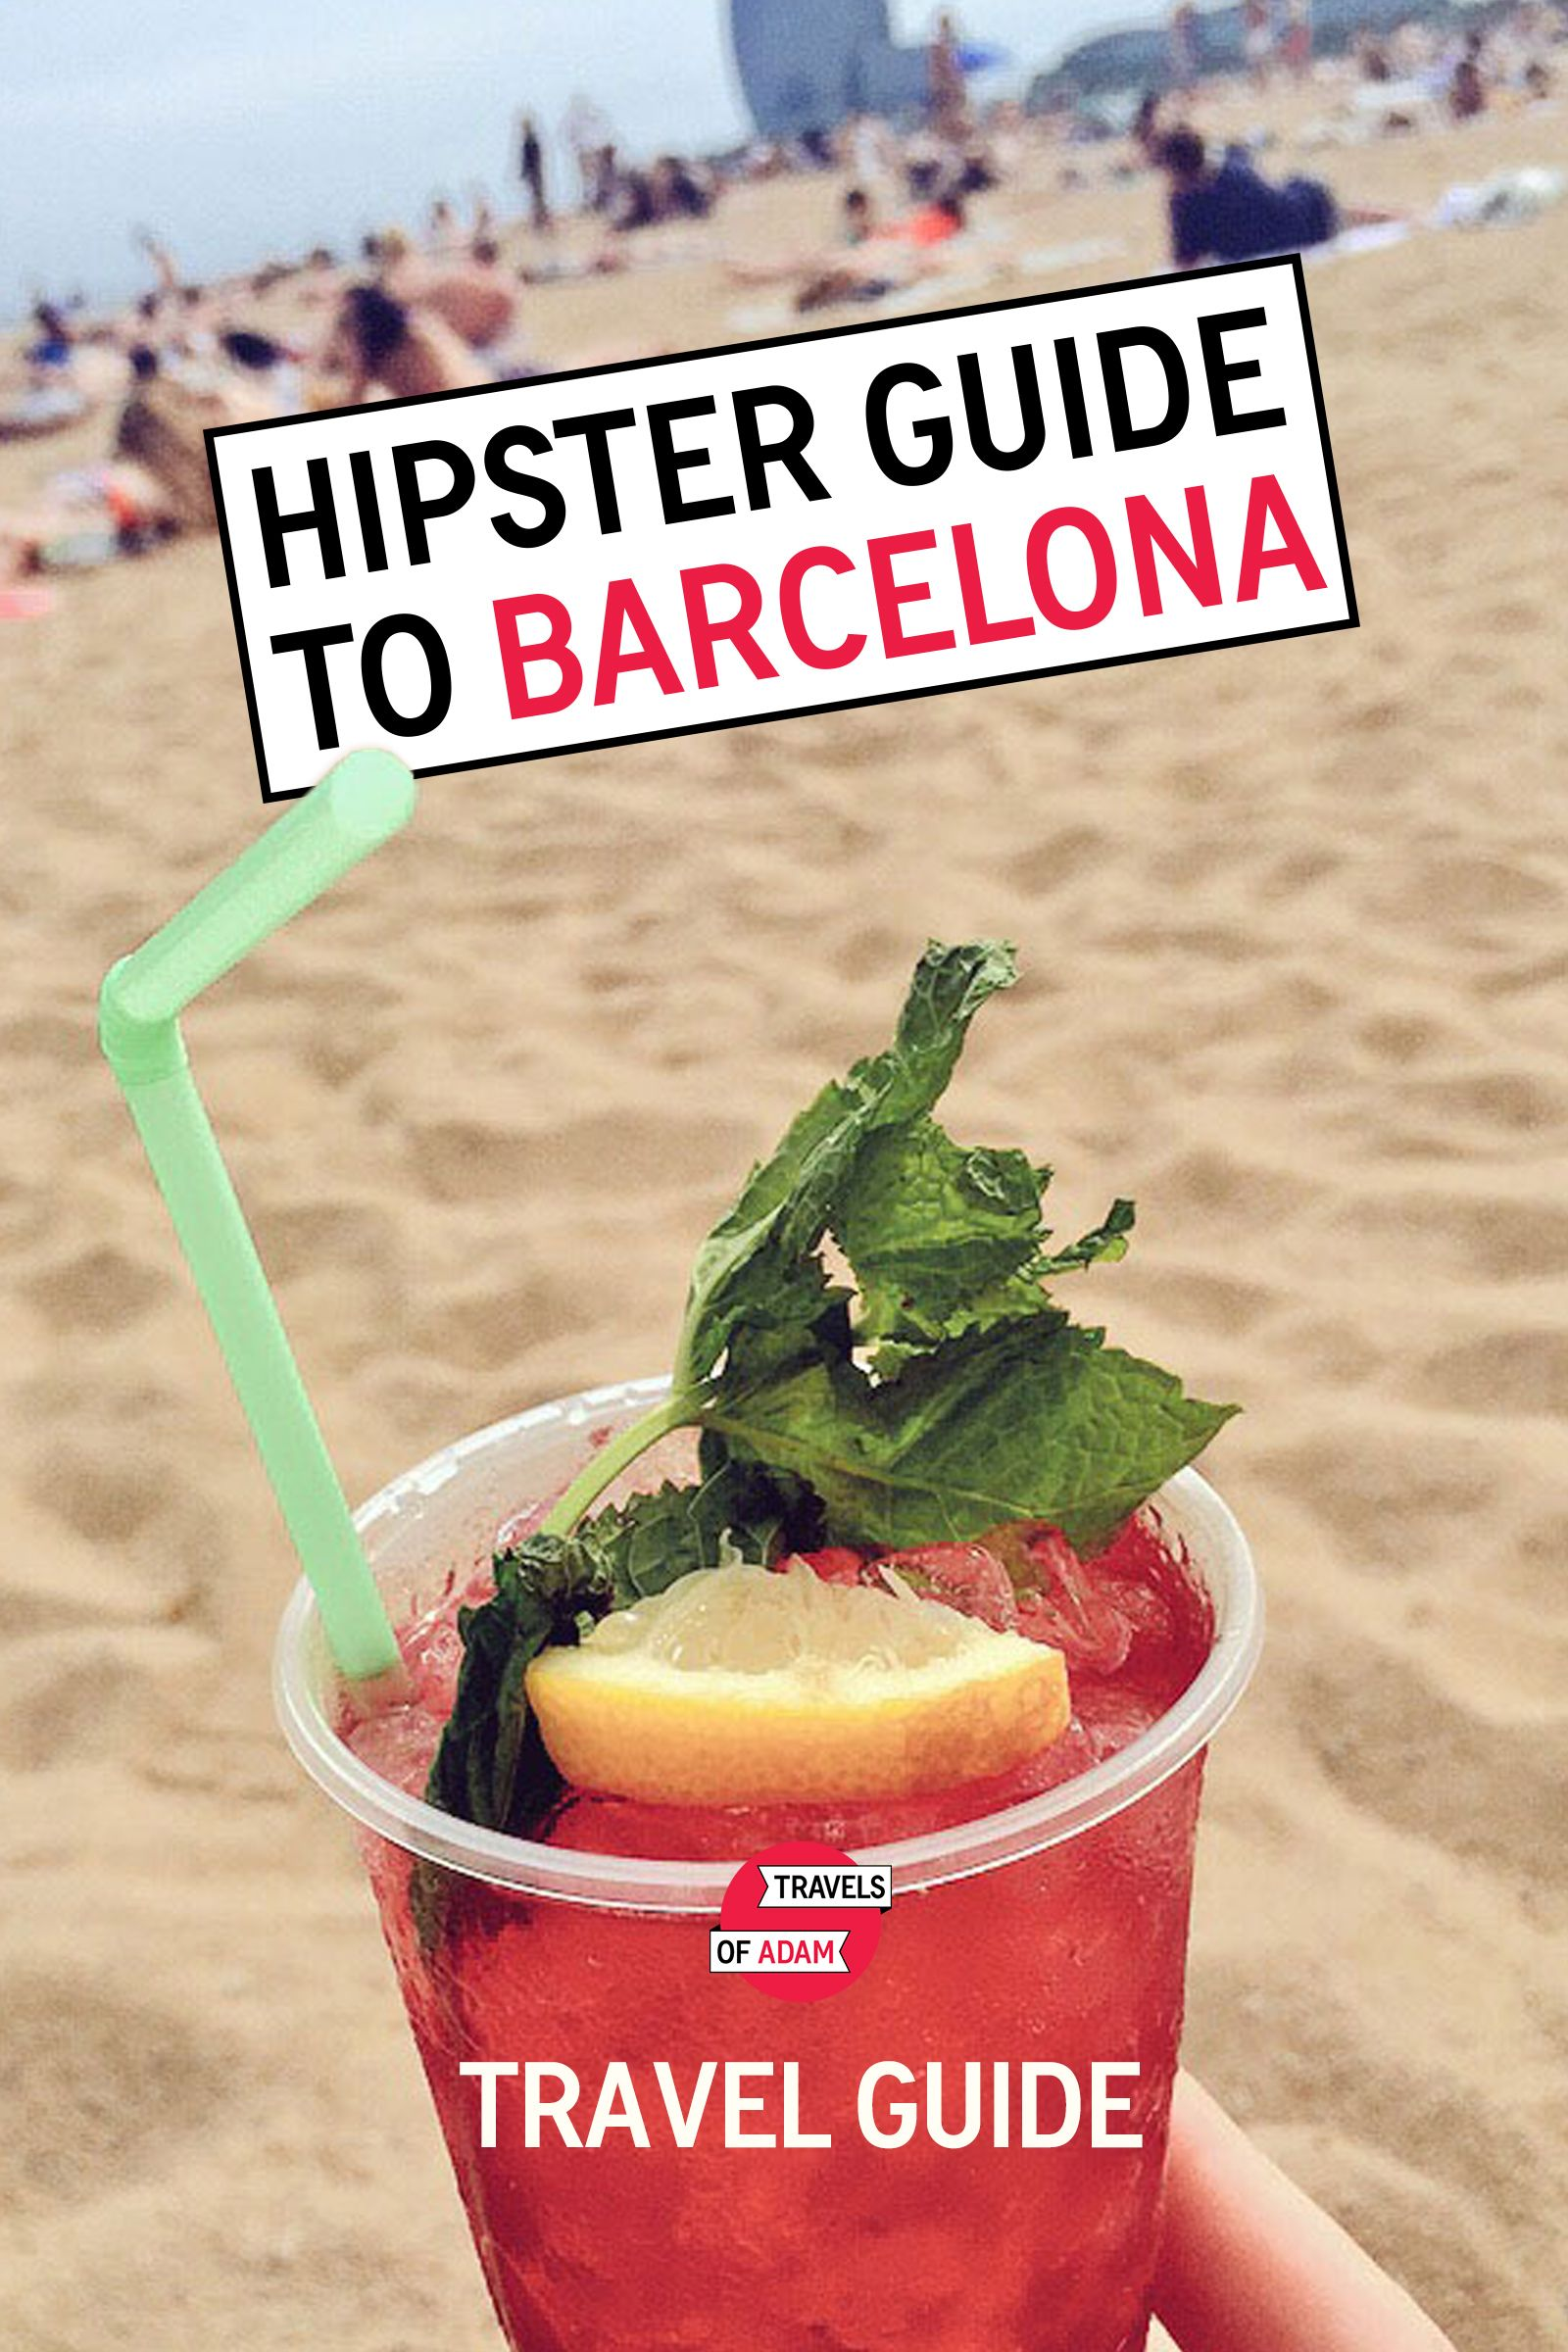 Your Ultimate Hipster Guide to Barcelona ...   Neighborhoods | Cafés & Desserts | Tapas Bars & Restaurants | Art, Museums & Culture | Shopping & Style | Bars & Nightlife | Gay Barcelona | Hotels | Travel Tips  FREE: http://travelsofadam.com/city-guides/barcelona/